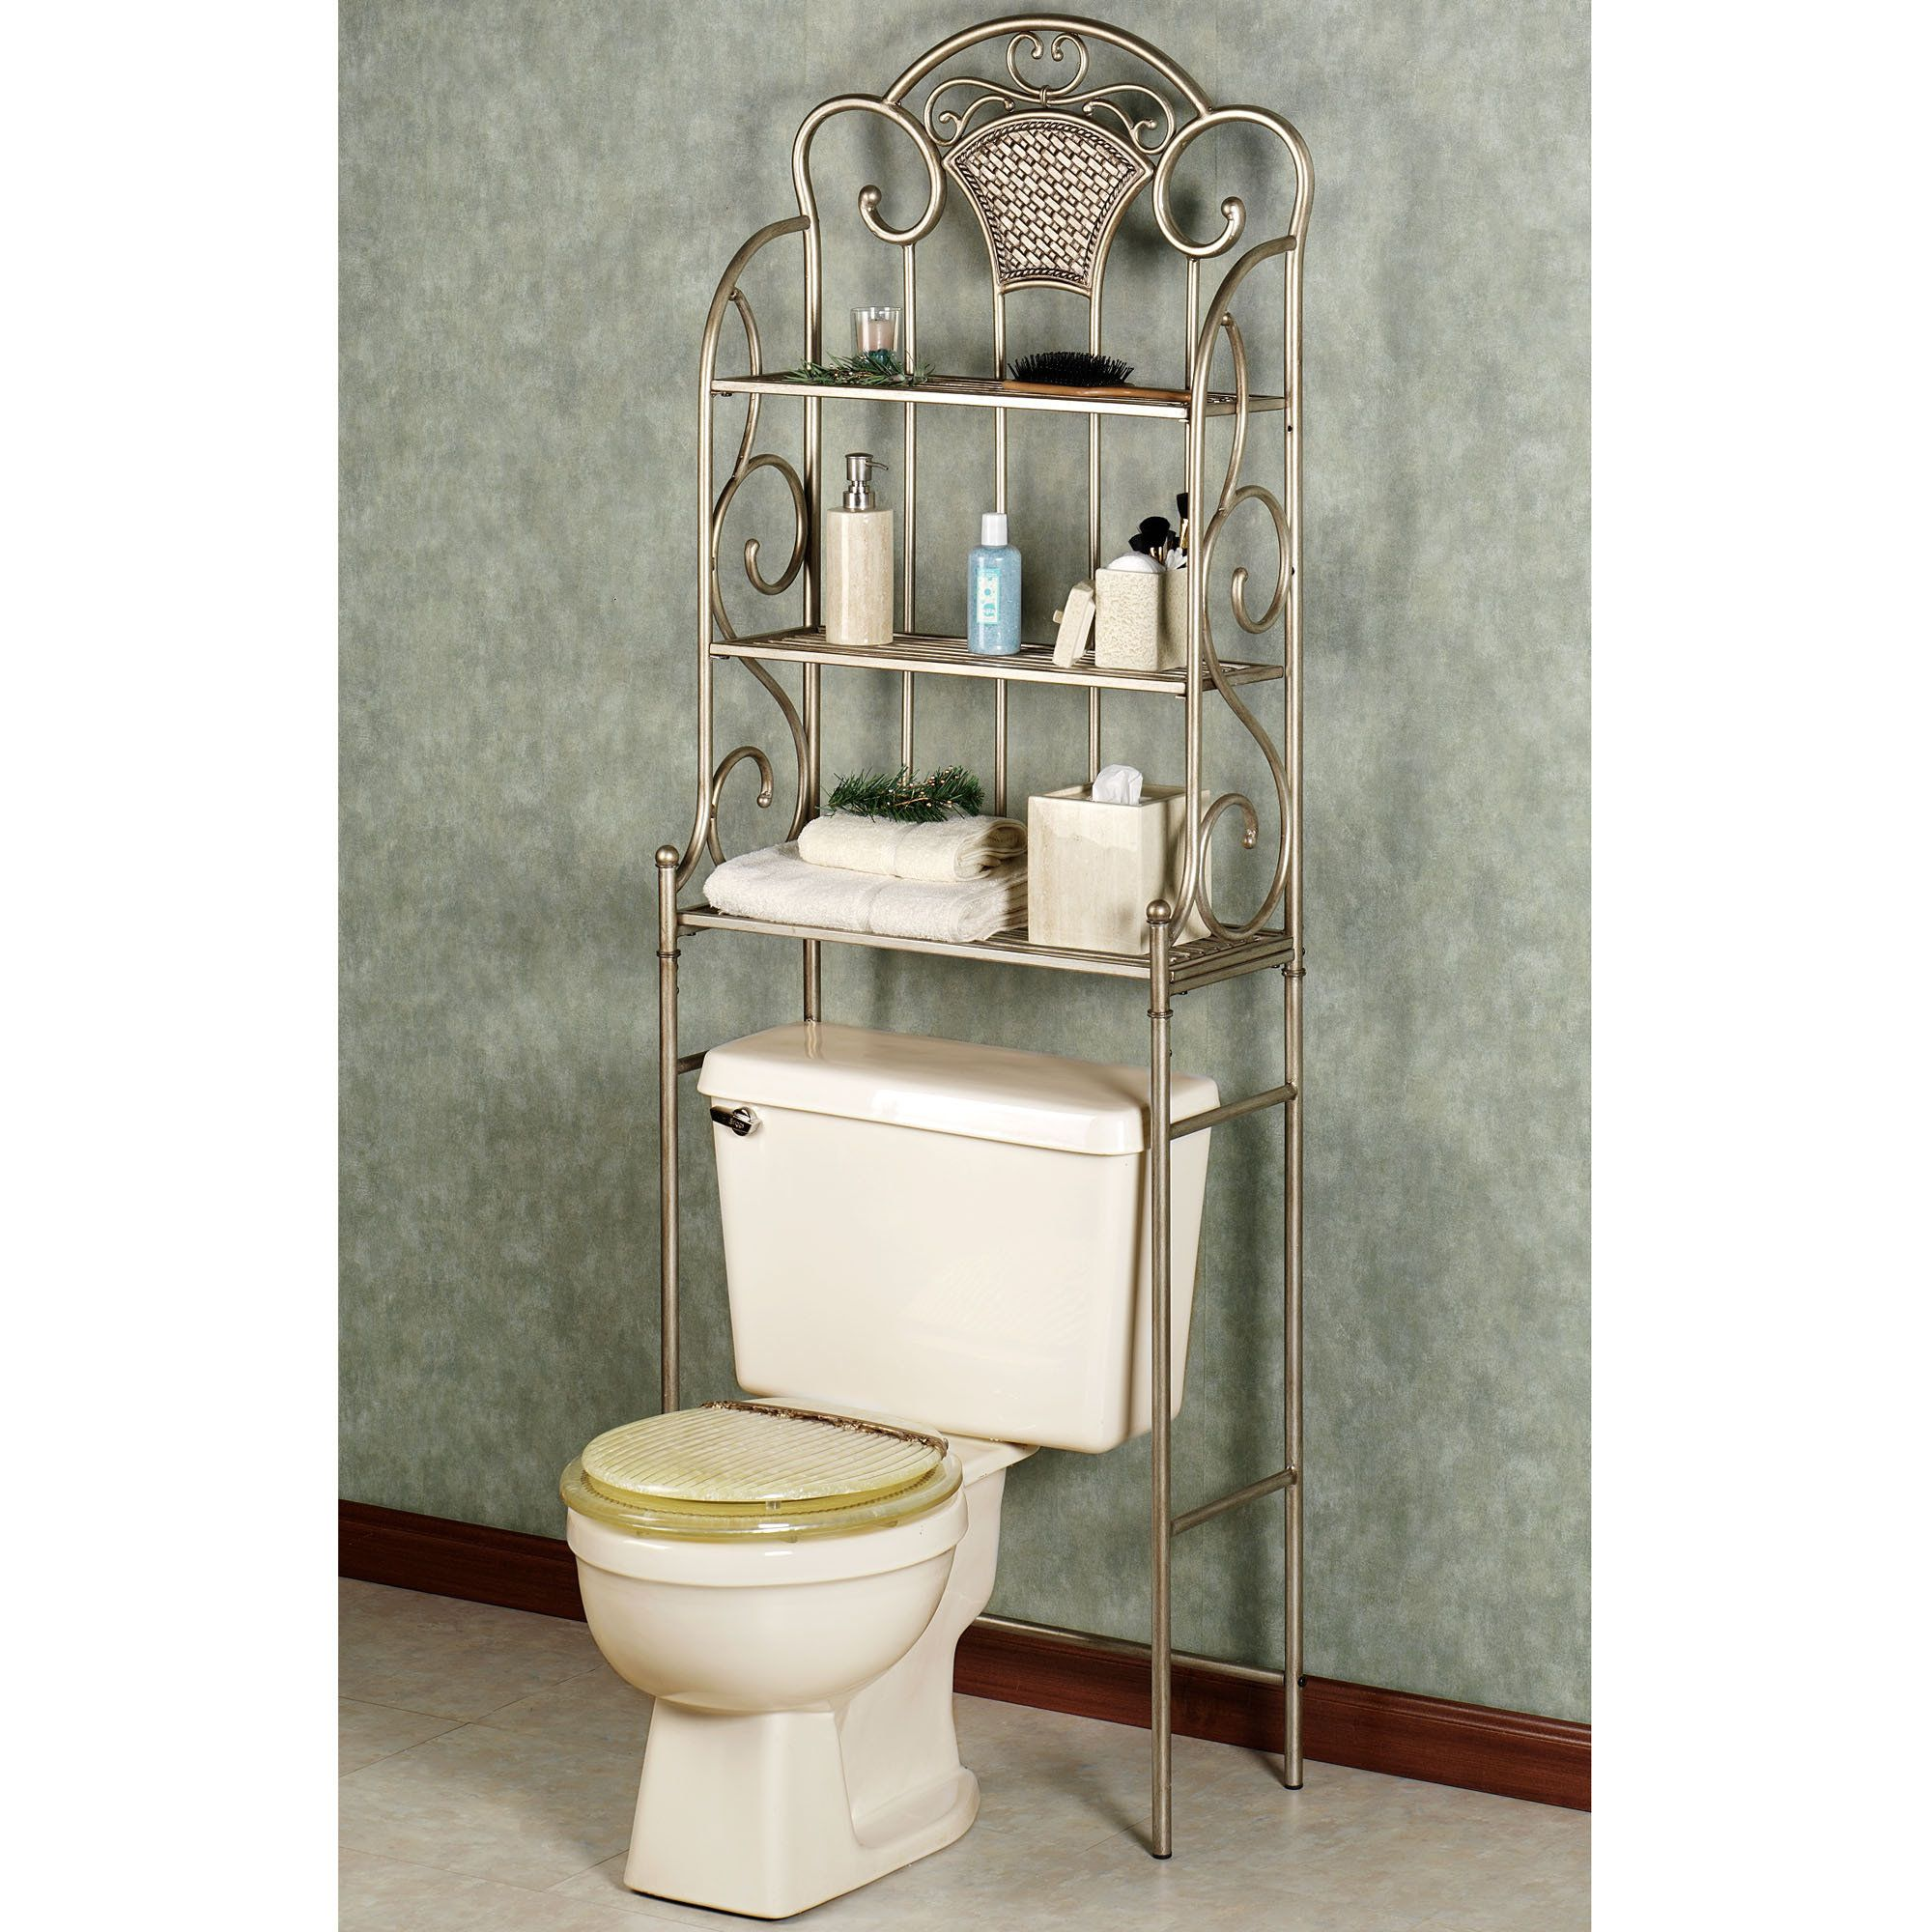 Bathroom Hutch Over Toilet. bathroom space saver shelves ideas ...